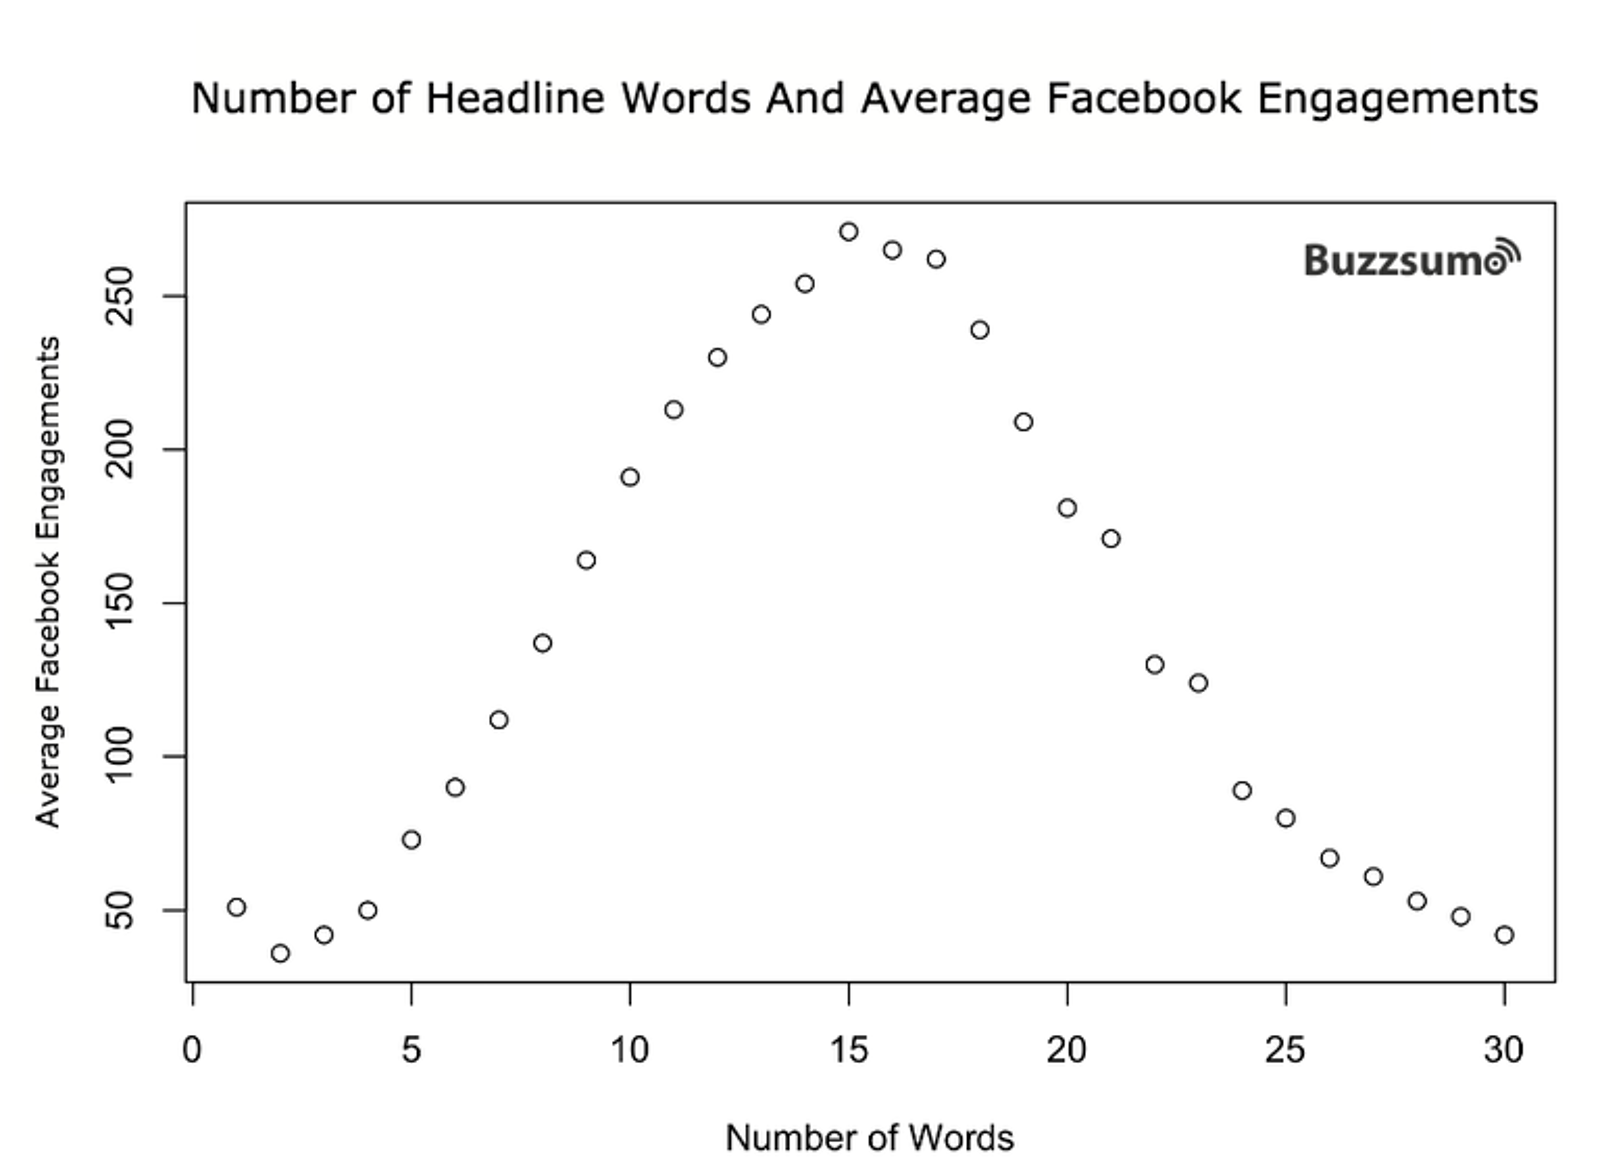 Number of Headline Words and Average Facebook Engagements